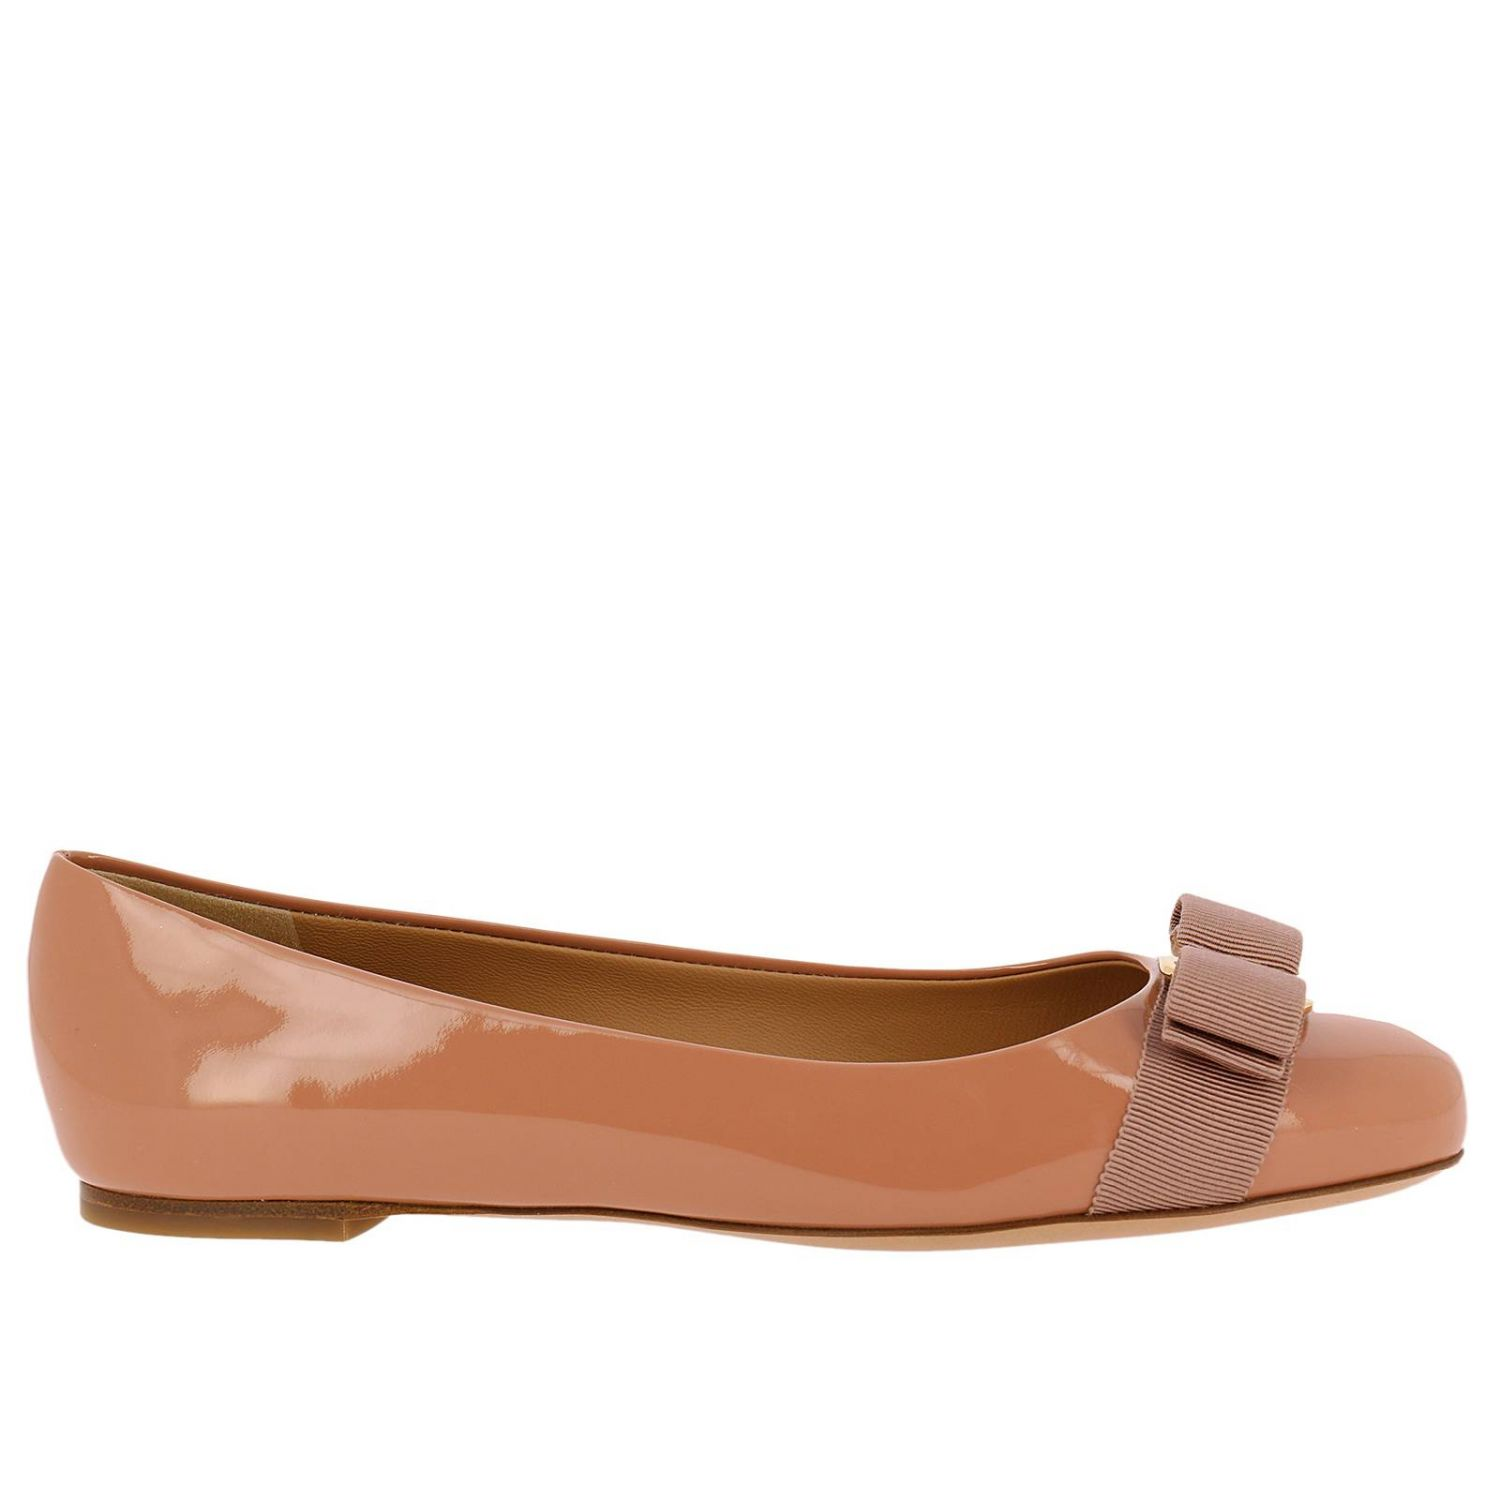 Ballet flats Salvatore Ferragamo: Varina ballet flats in patent leather with Vara gros grain bow blush pink 1